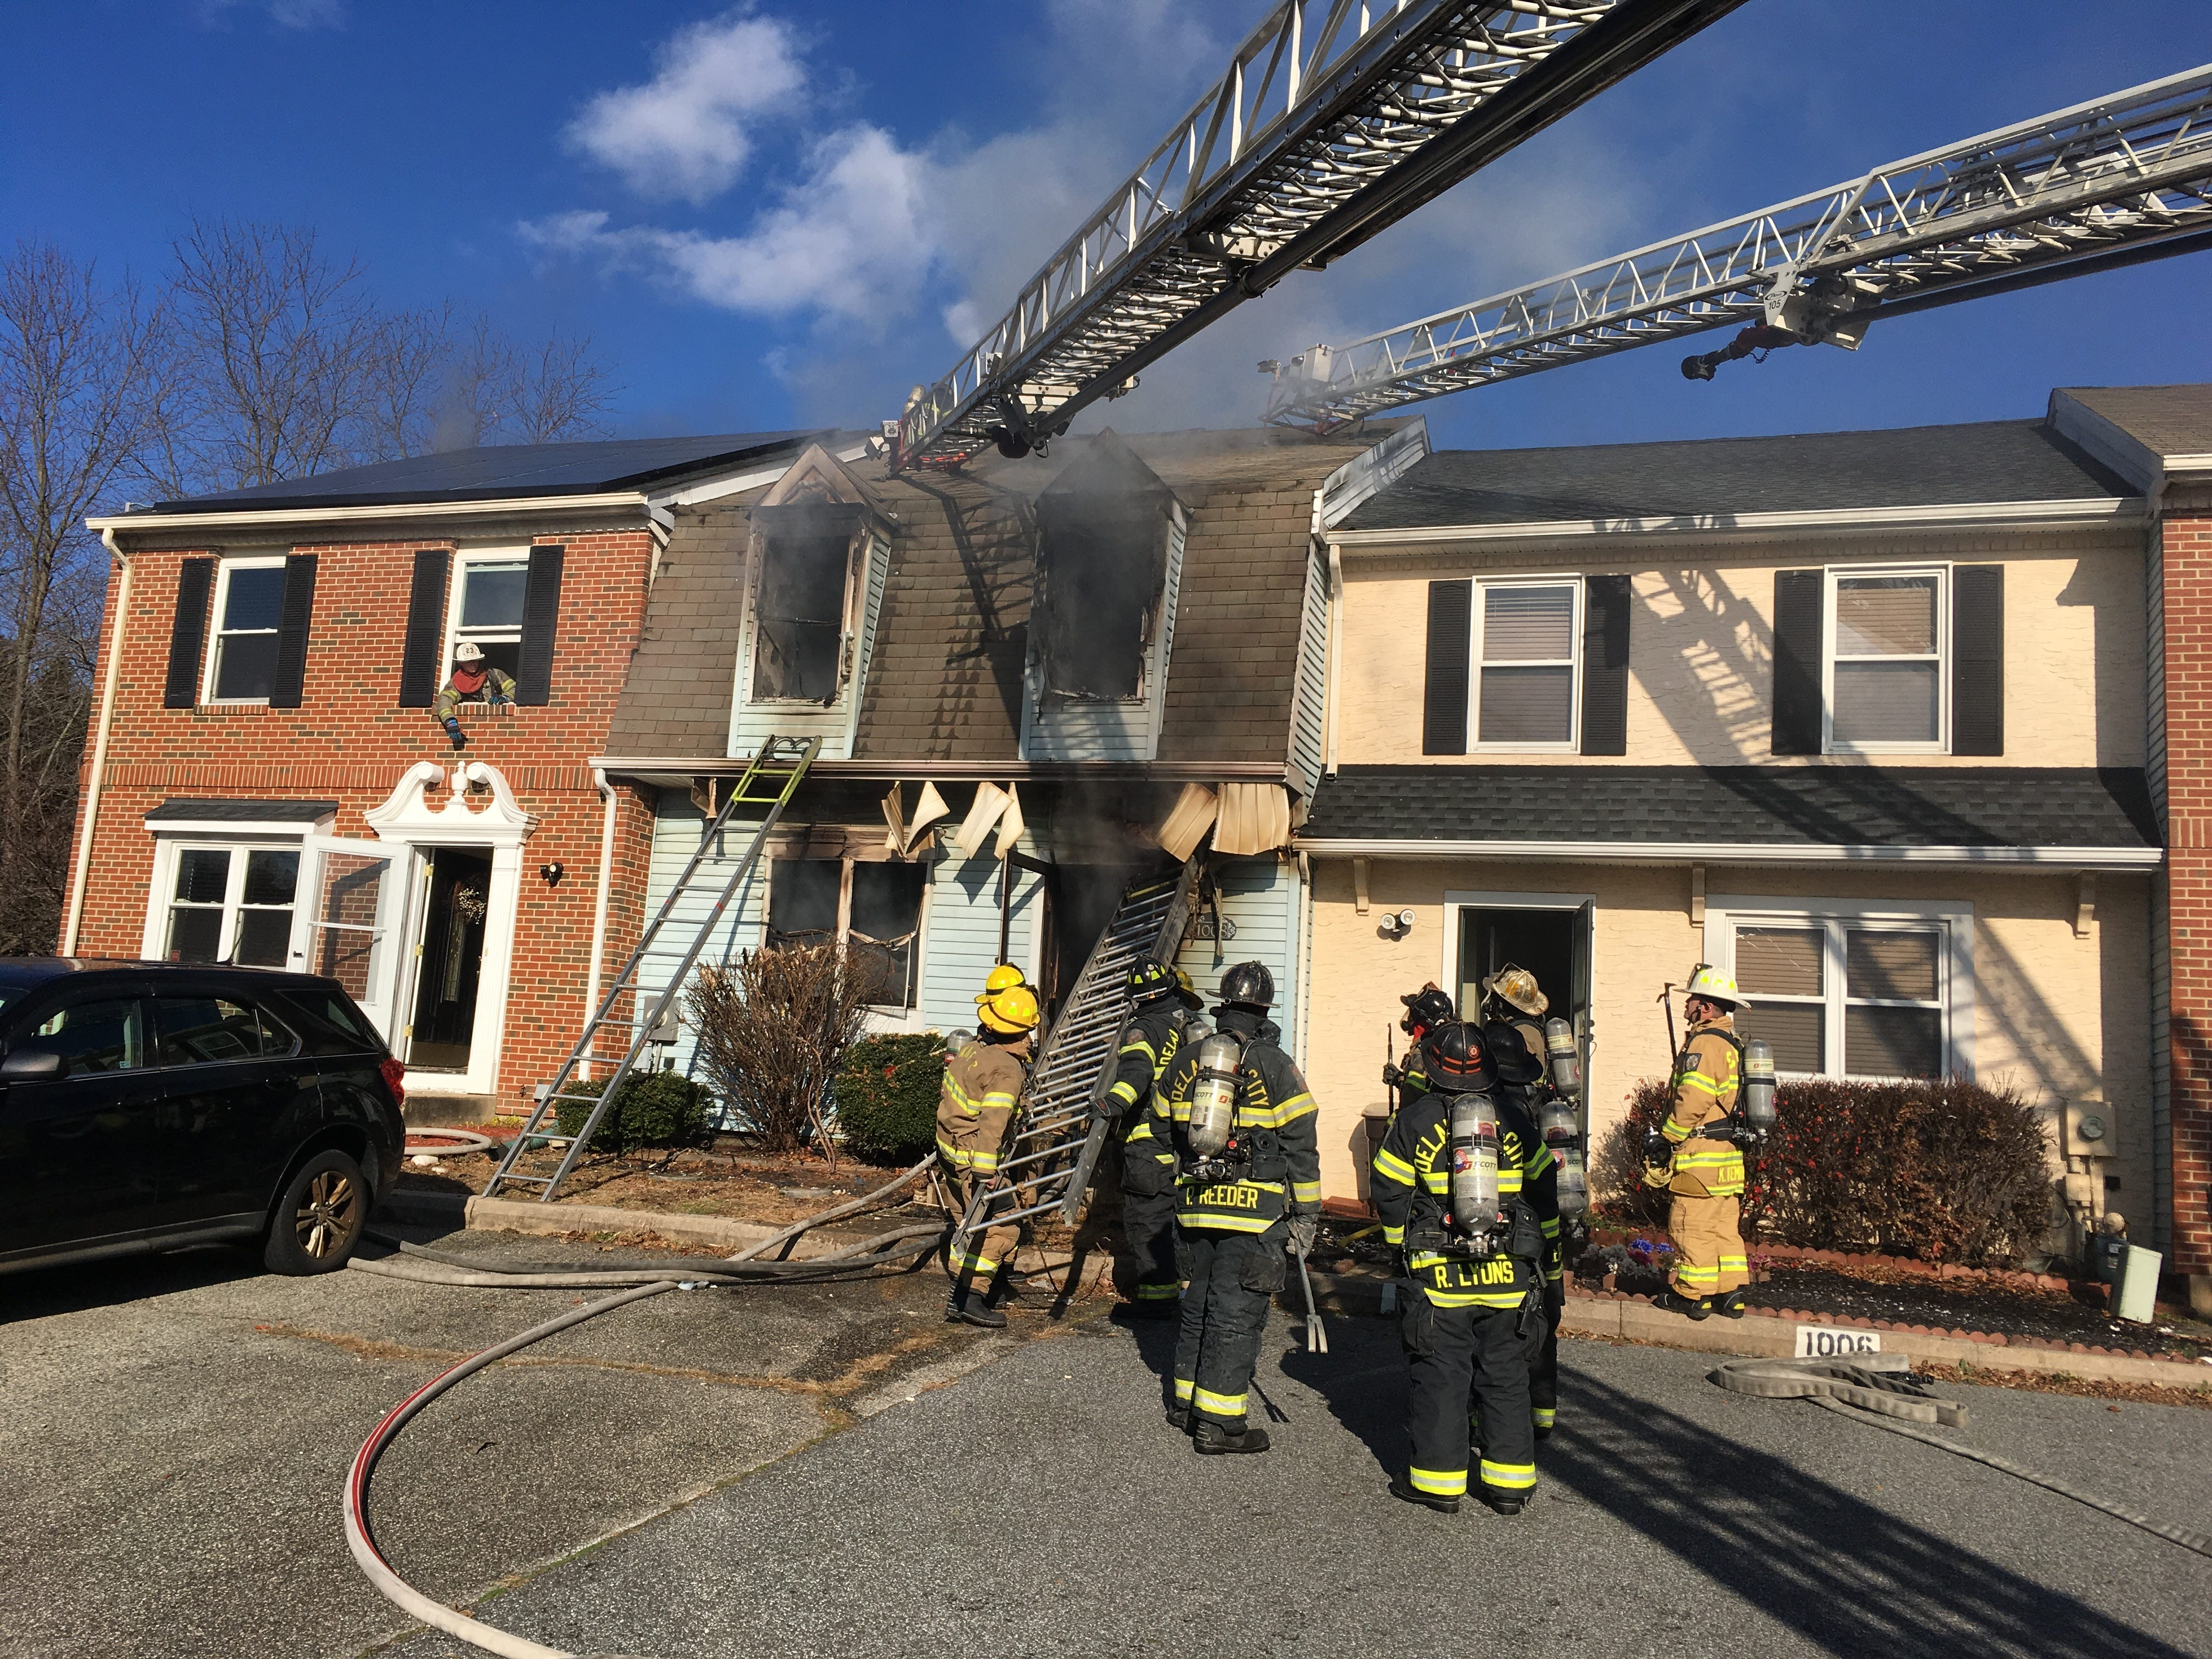 Firefighters at the scene of a fatal fire near New Castle.